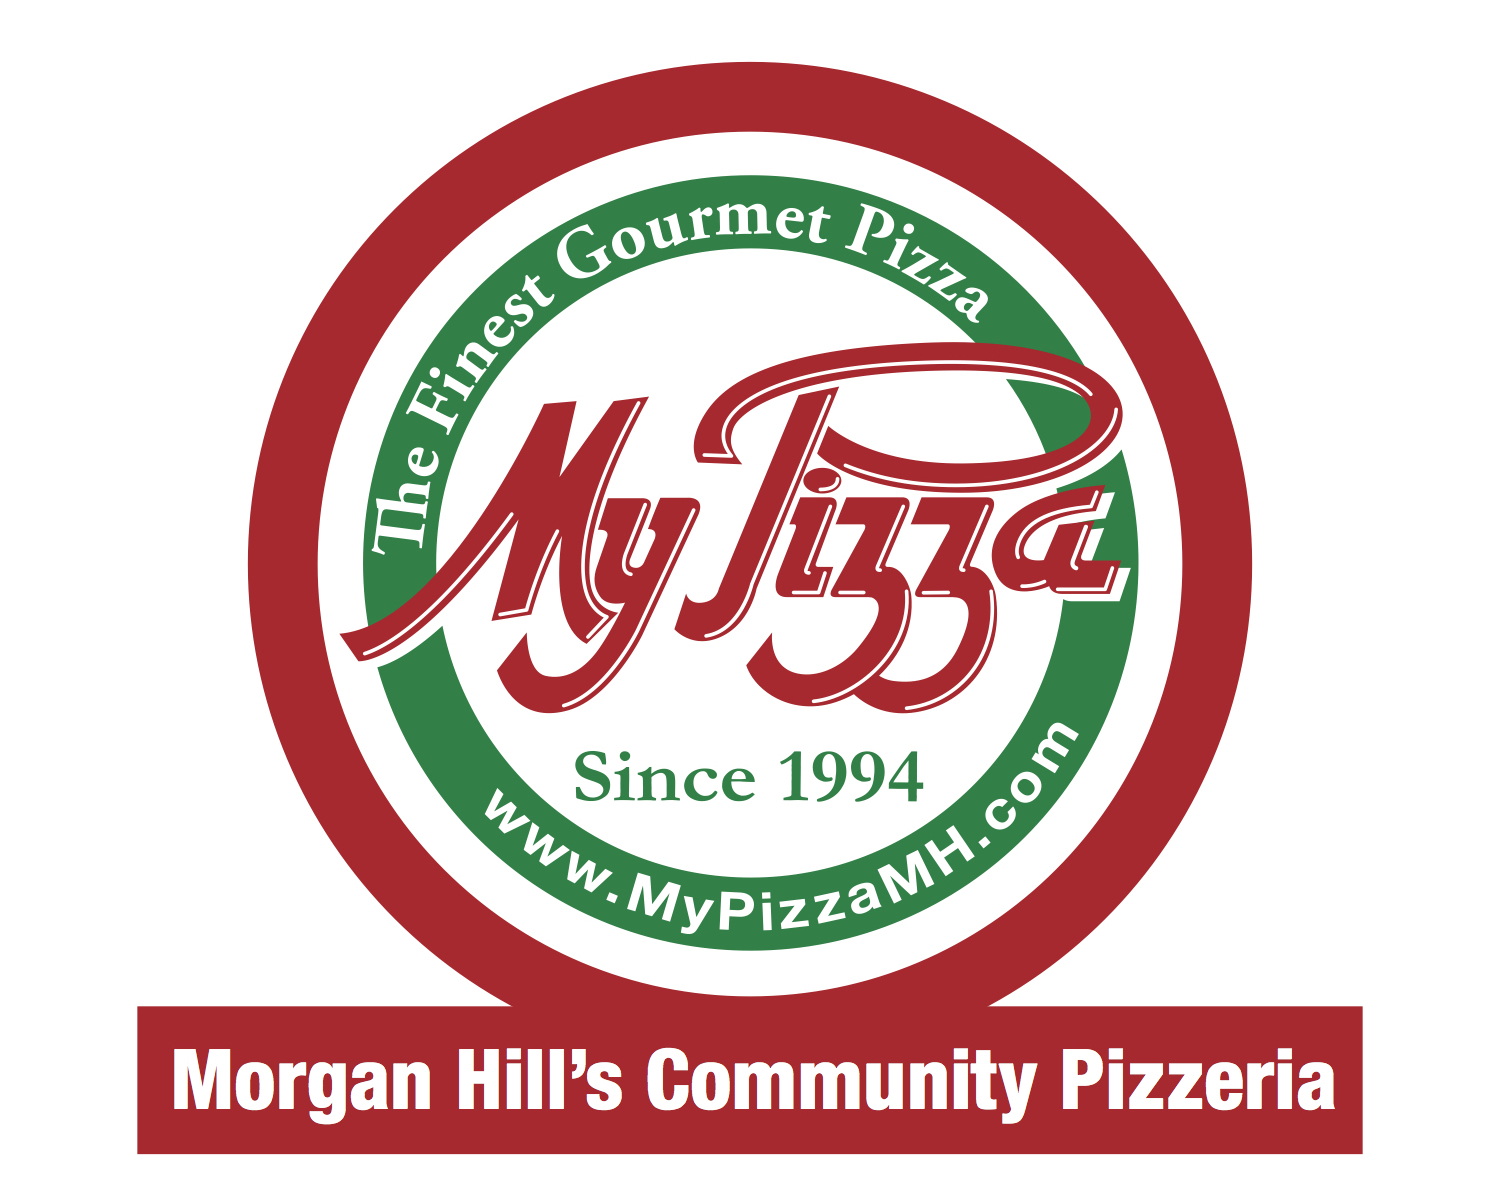 My Pizza Morgan Hill